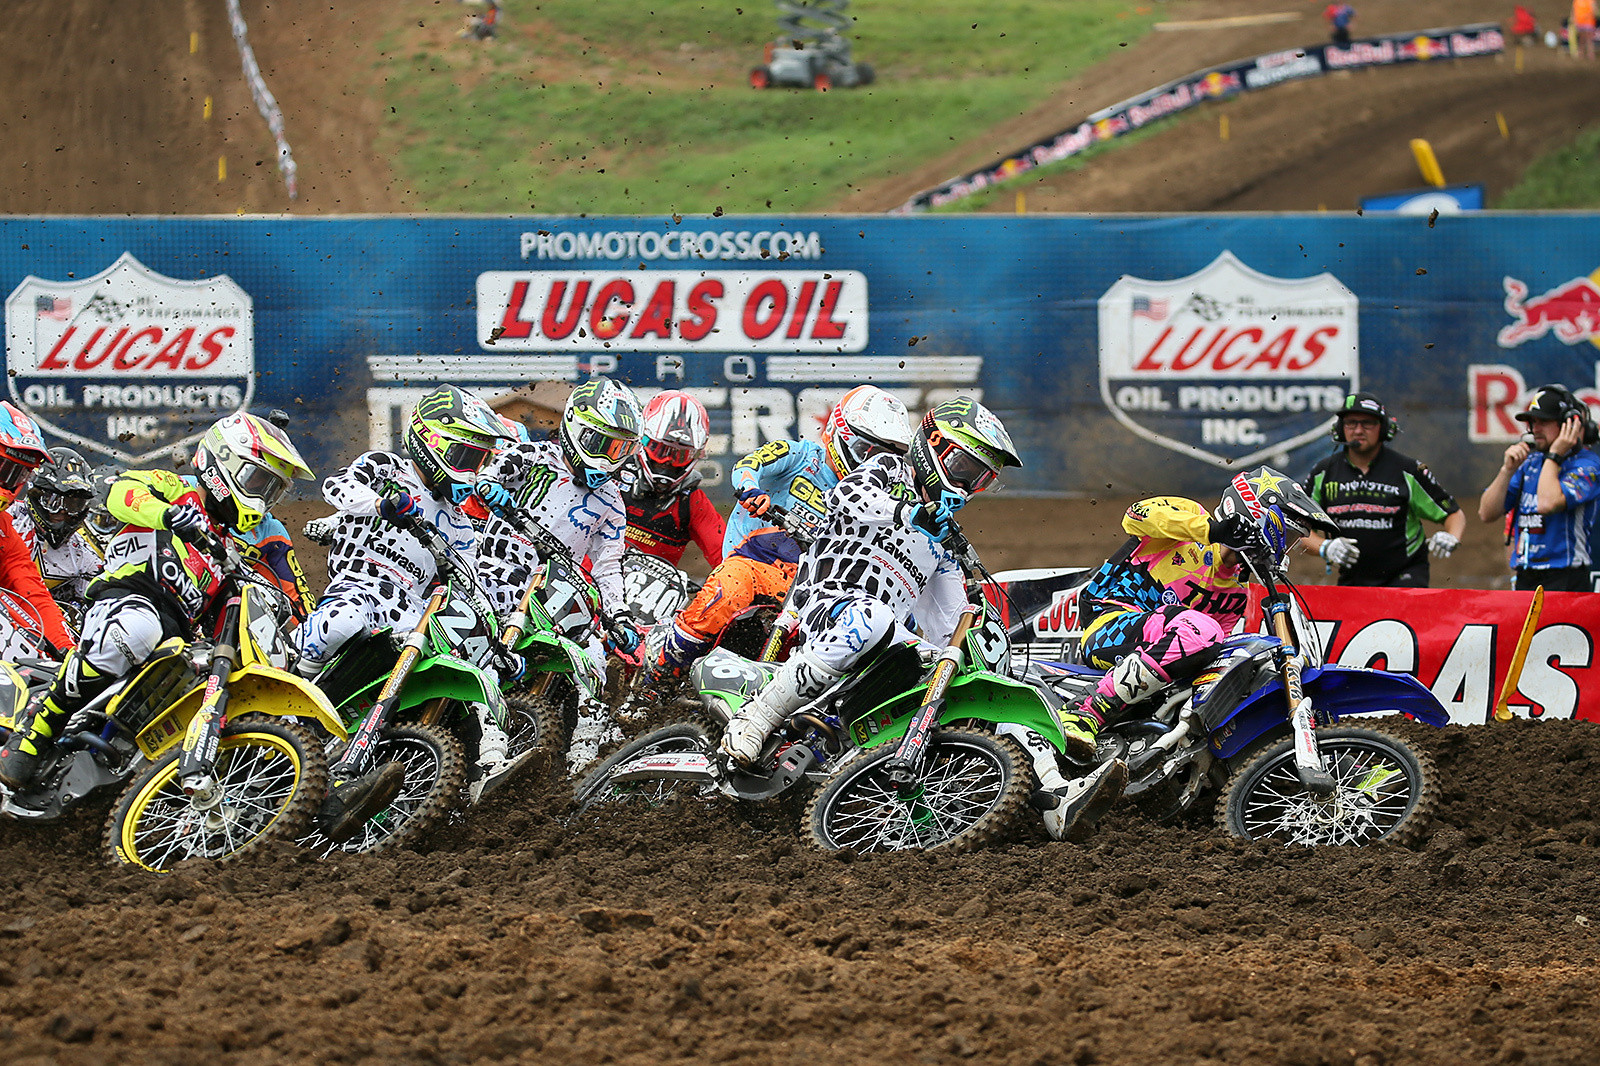 Well here's a rare sight...Aaron Plessinger nabbing a holeshot. Even better, he did the same thing in moto two. The first moto resulted in a win, and he was second in moto two, but that was plenty good enough for the overall.